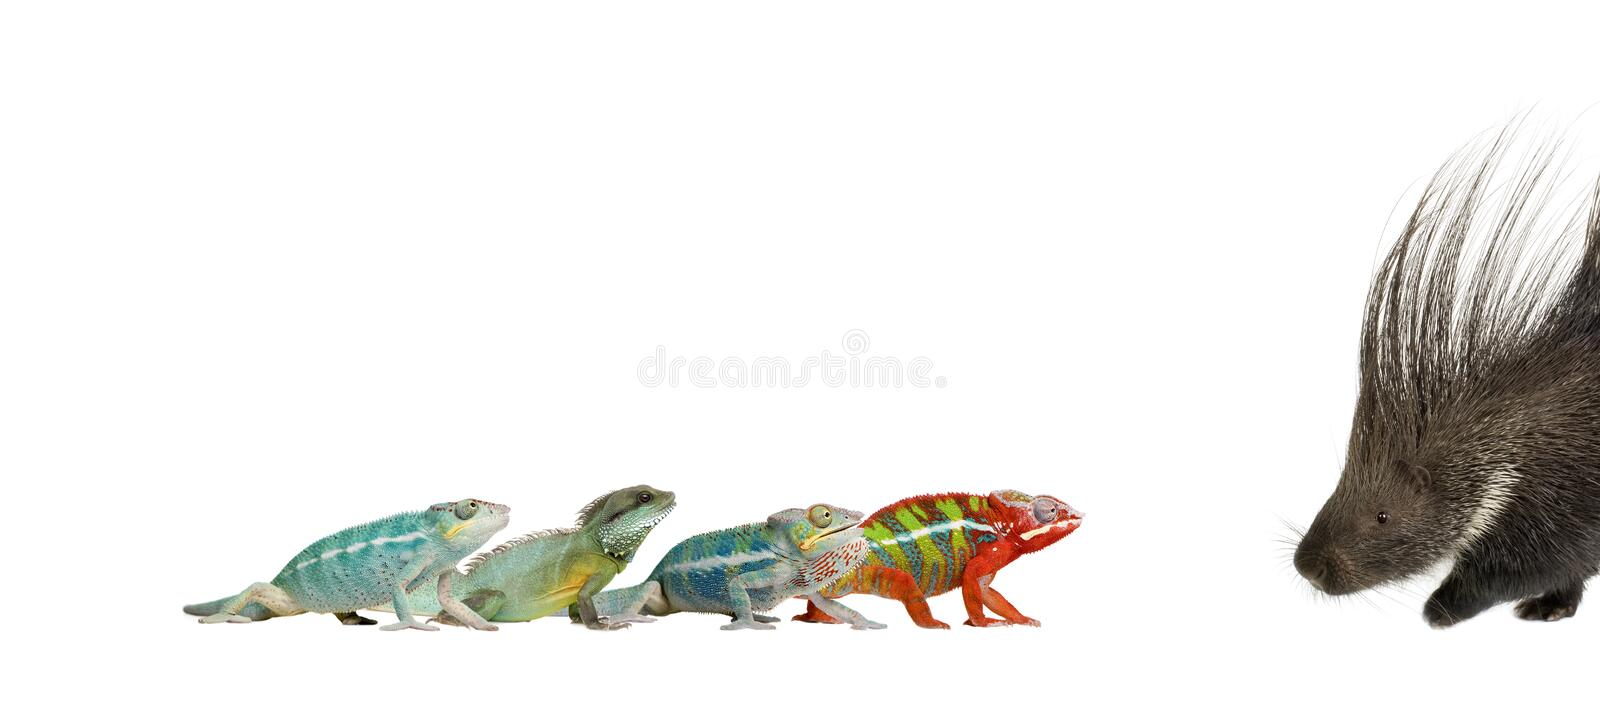 Download Chameleons And Porcupine Against White Background Stock Image - Image: 11785325